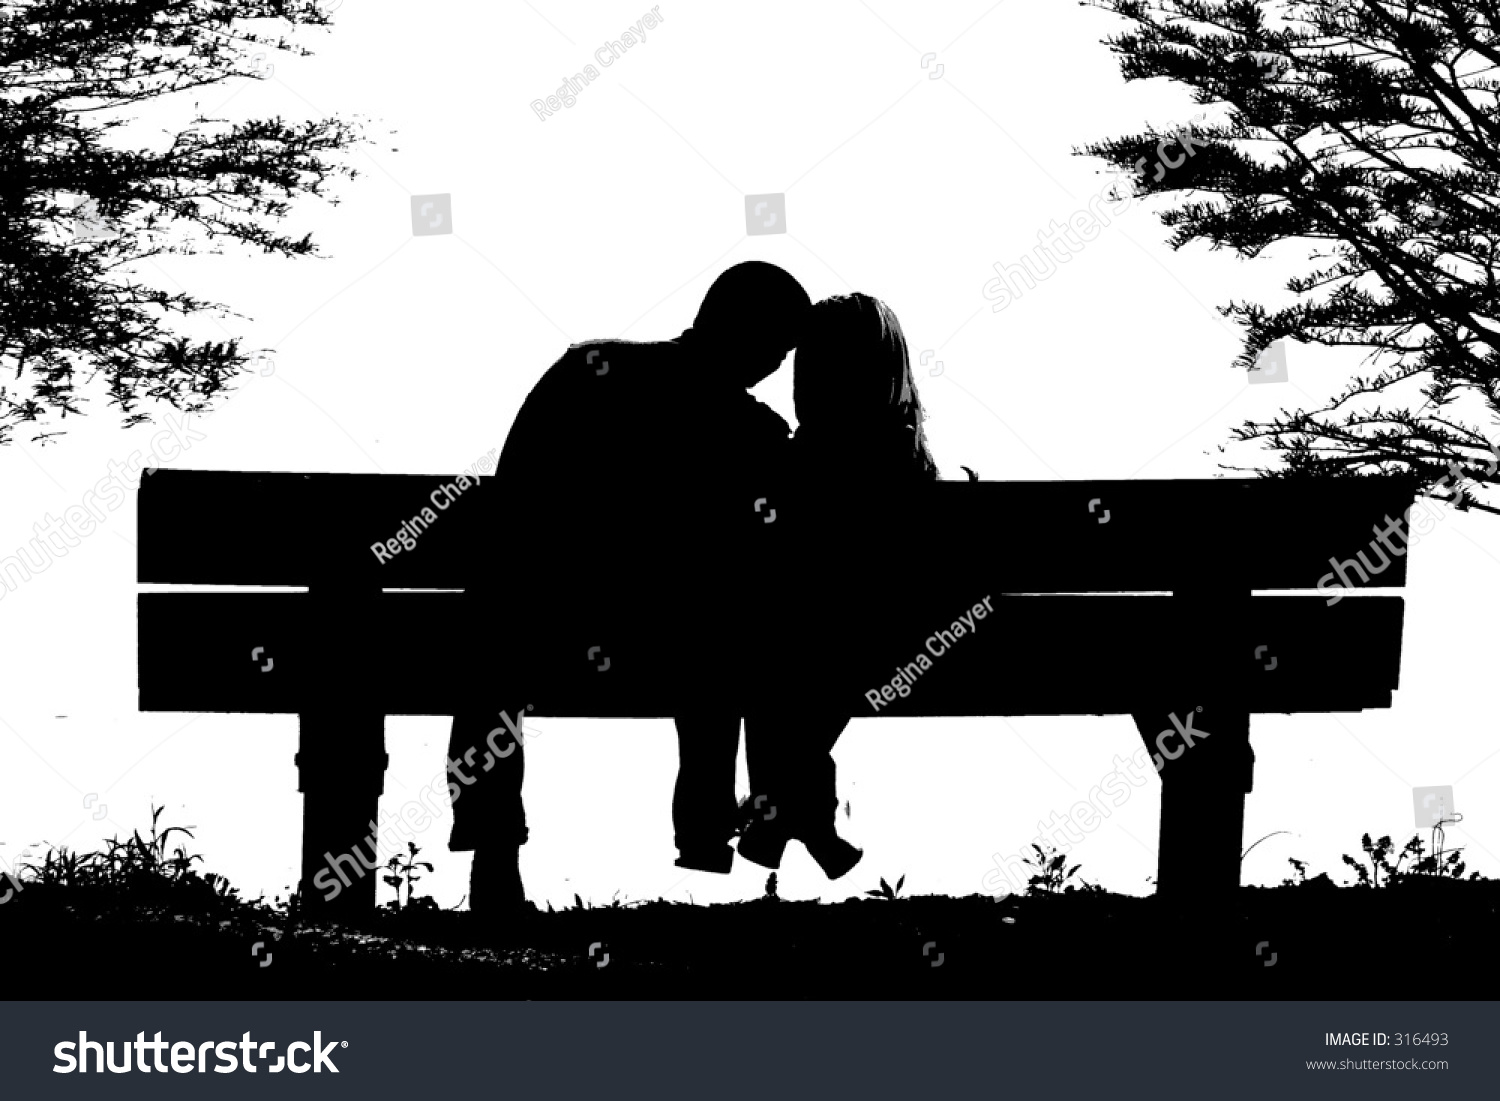 Silhouette Couple On Park Bench Stock Photo 316493 ...